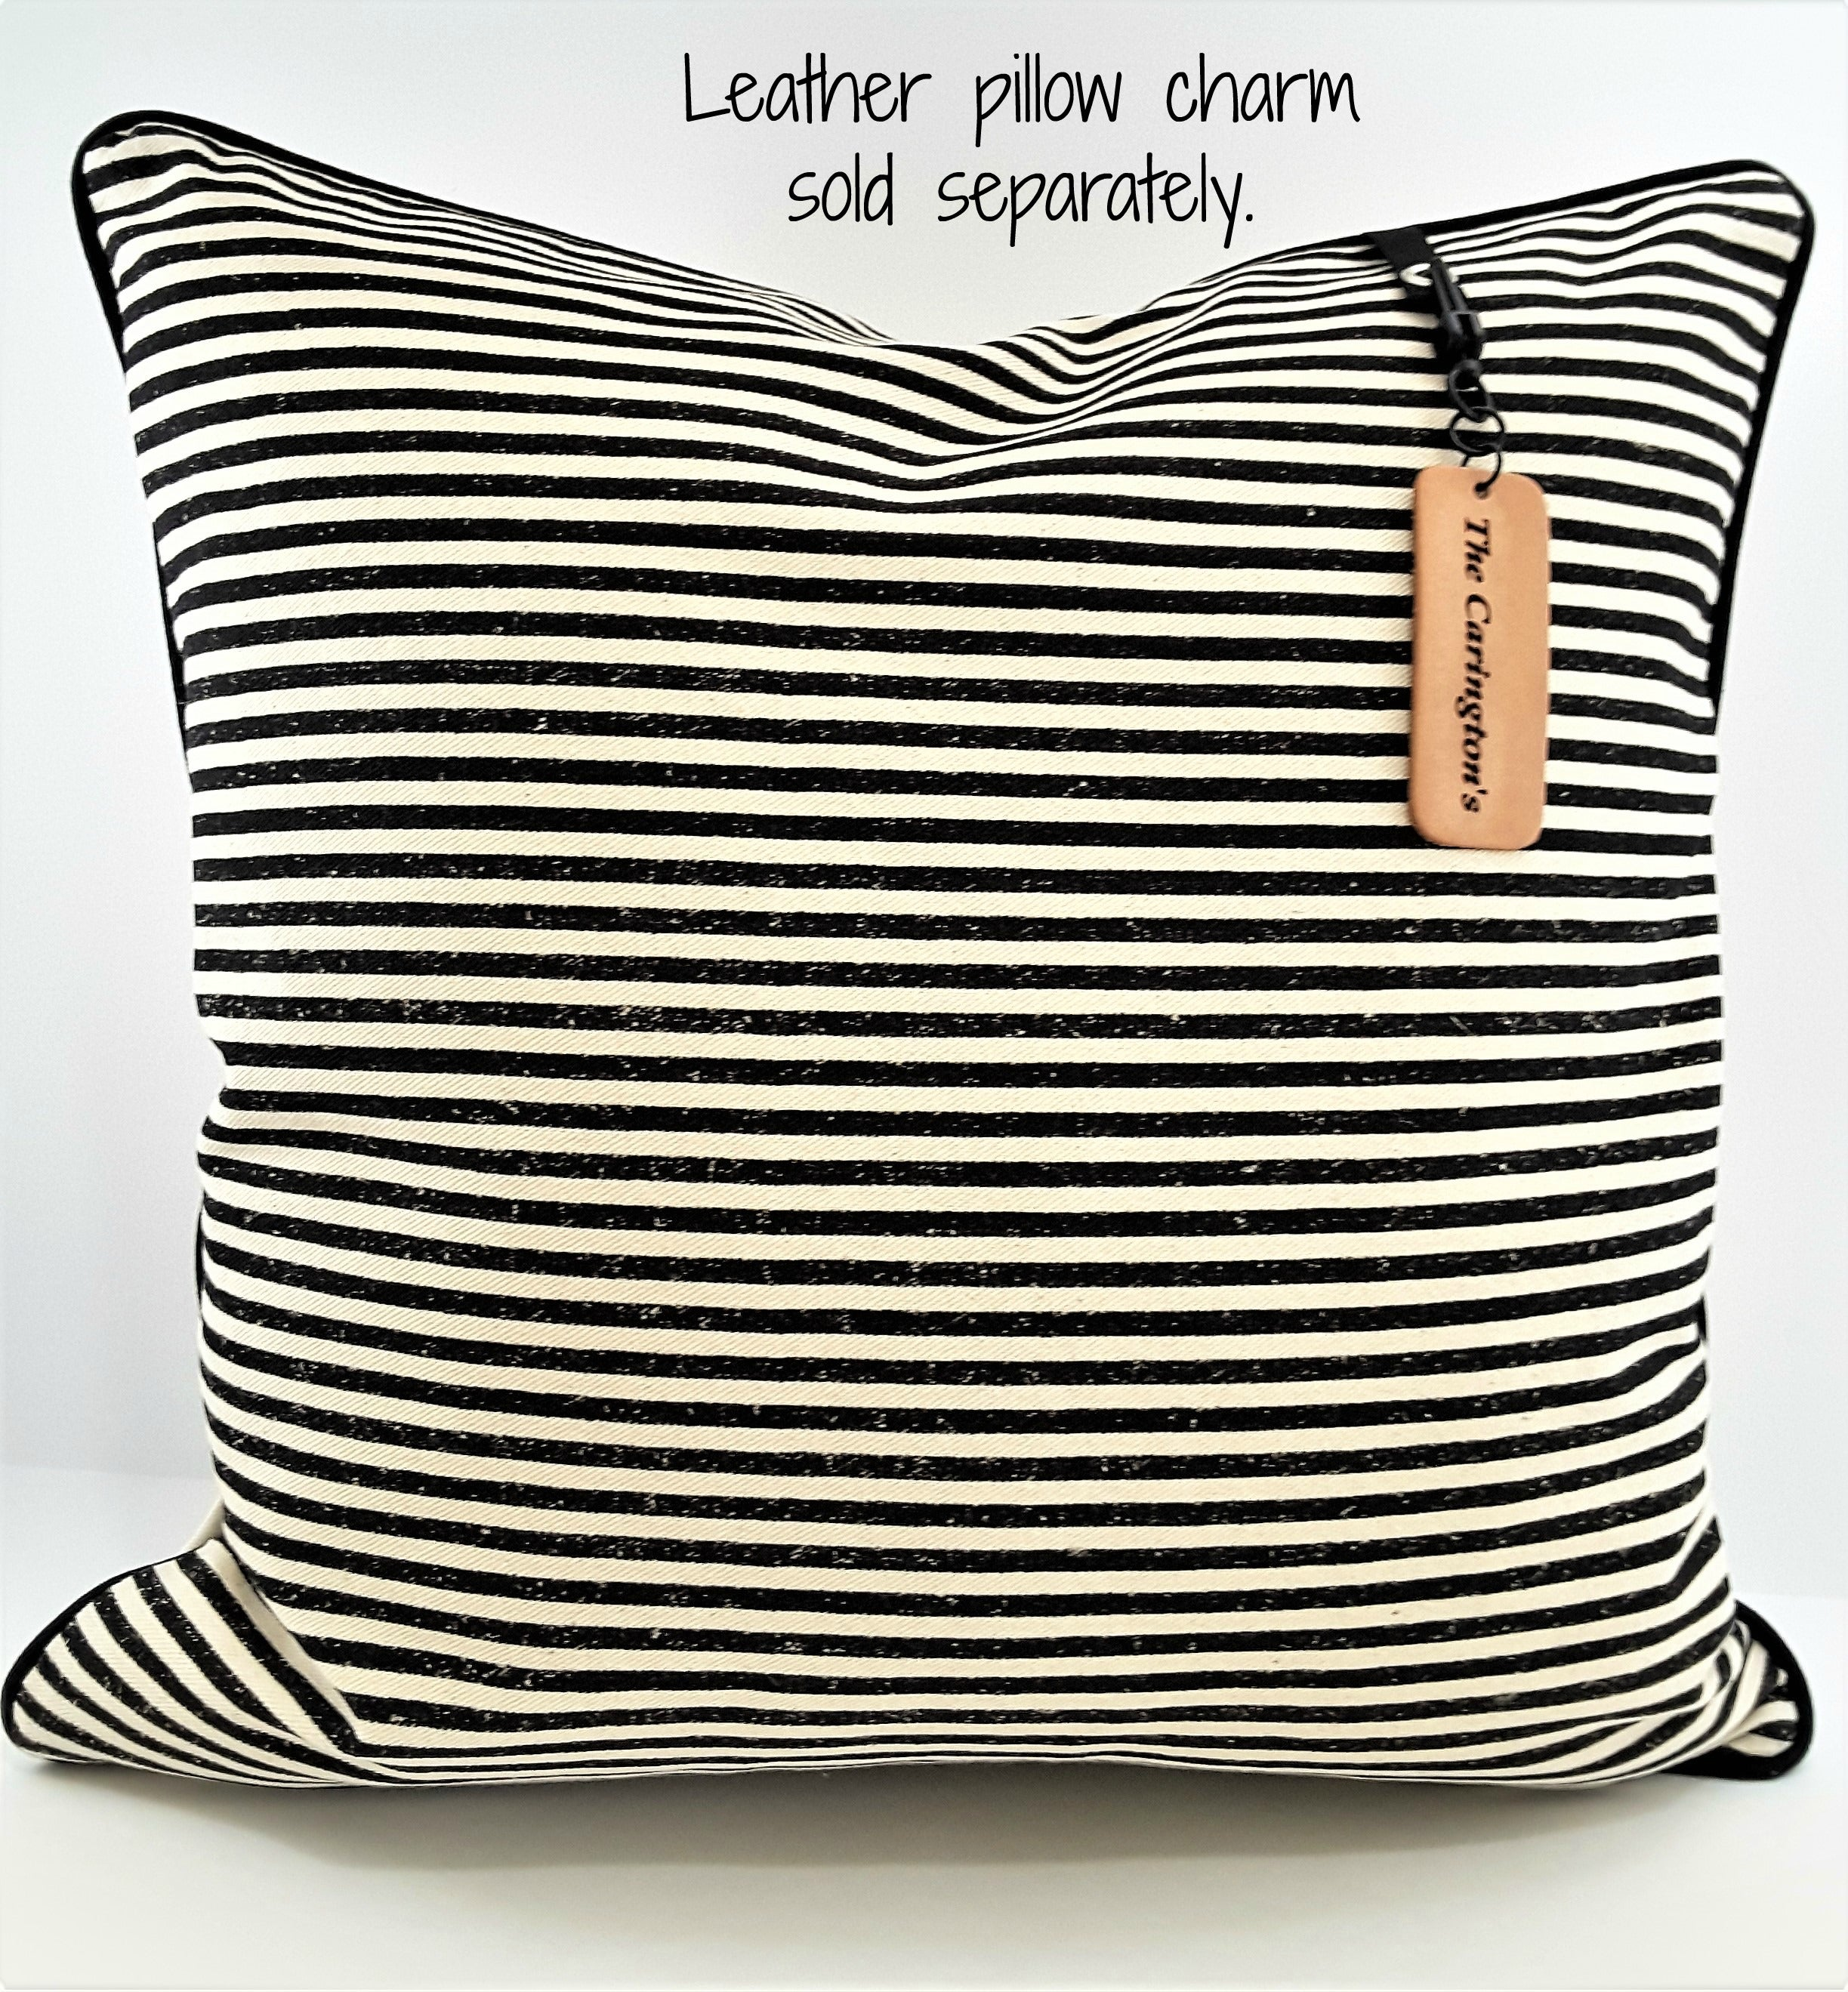 LEATHER PILLOW TAG HANGING FROM HORIZONTAL STRIPE PILLOW